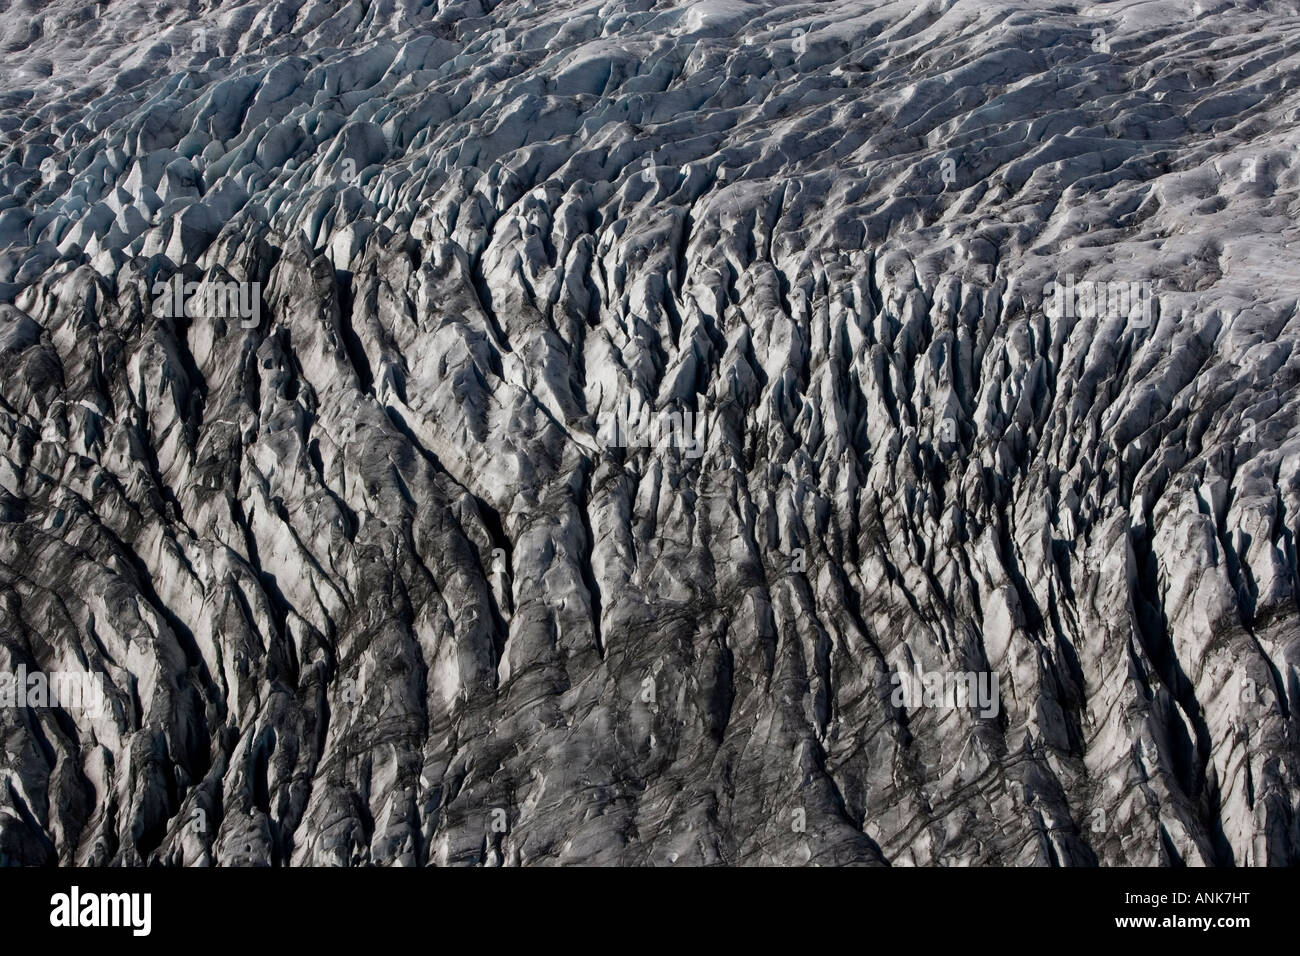 Aerial photo of glacier in Iceland - Stock Image